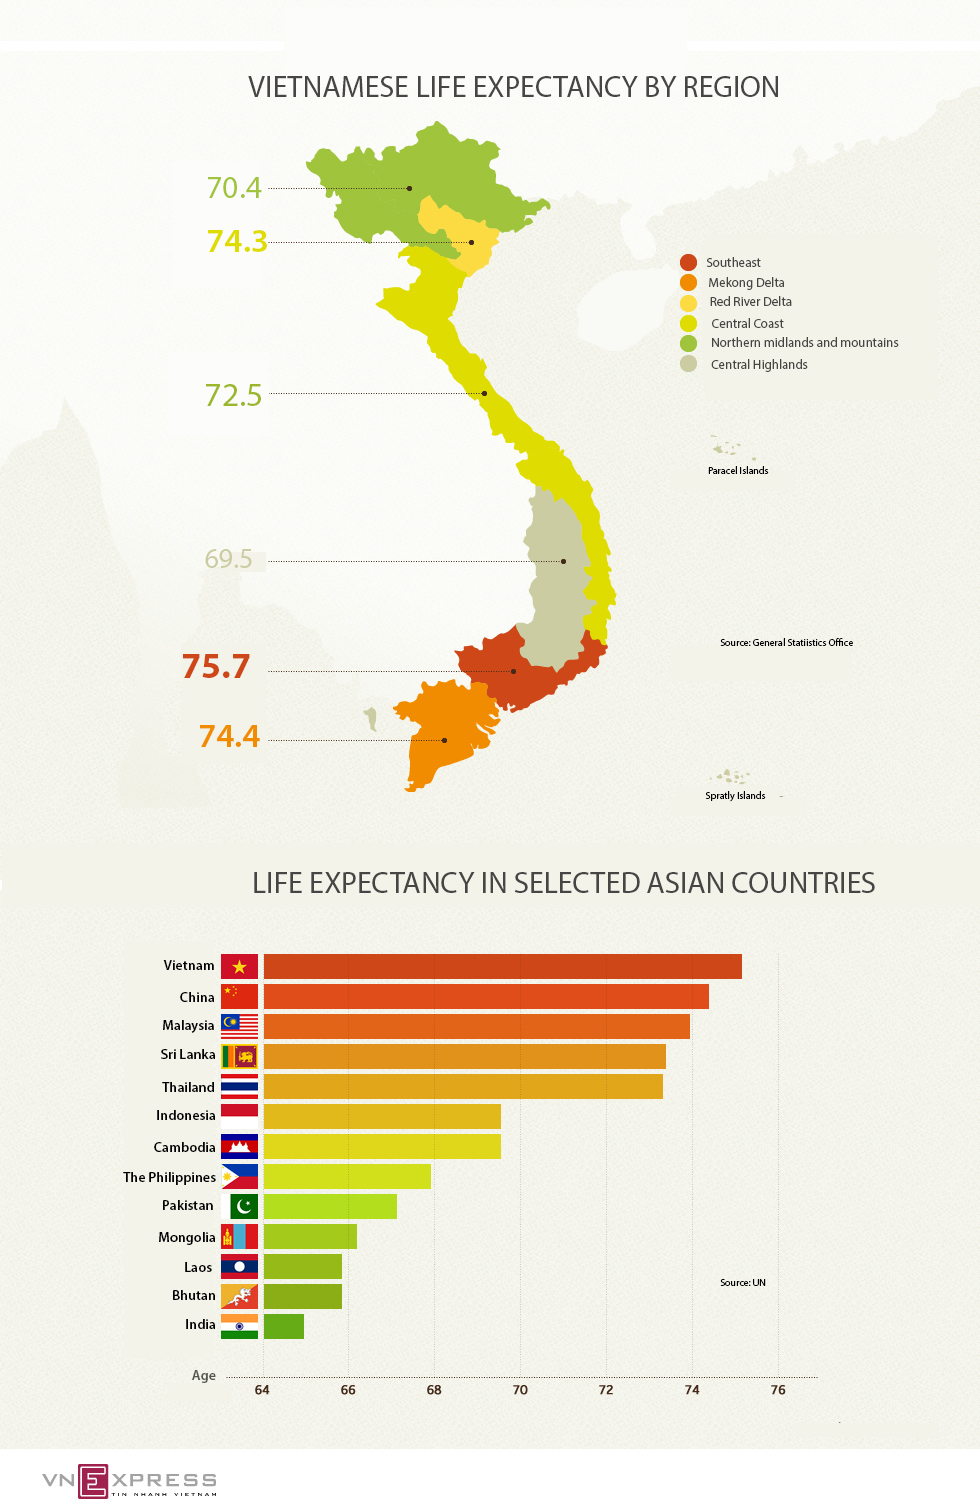 Vietnamese outlive most of their ASEAN peers